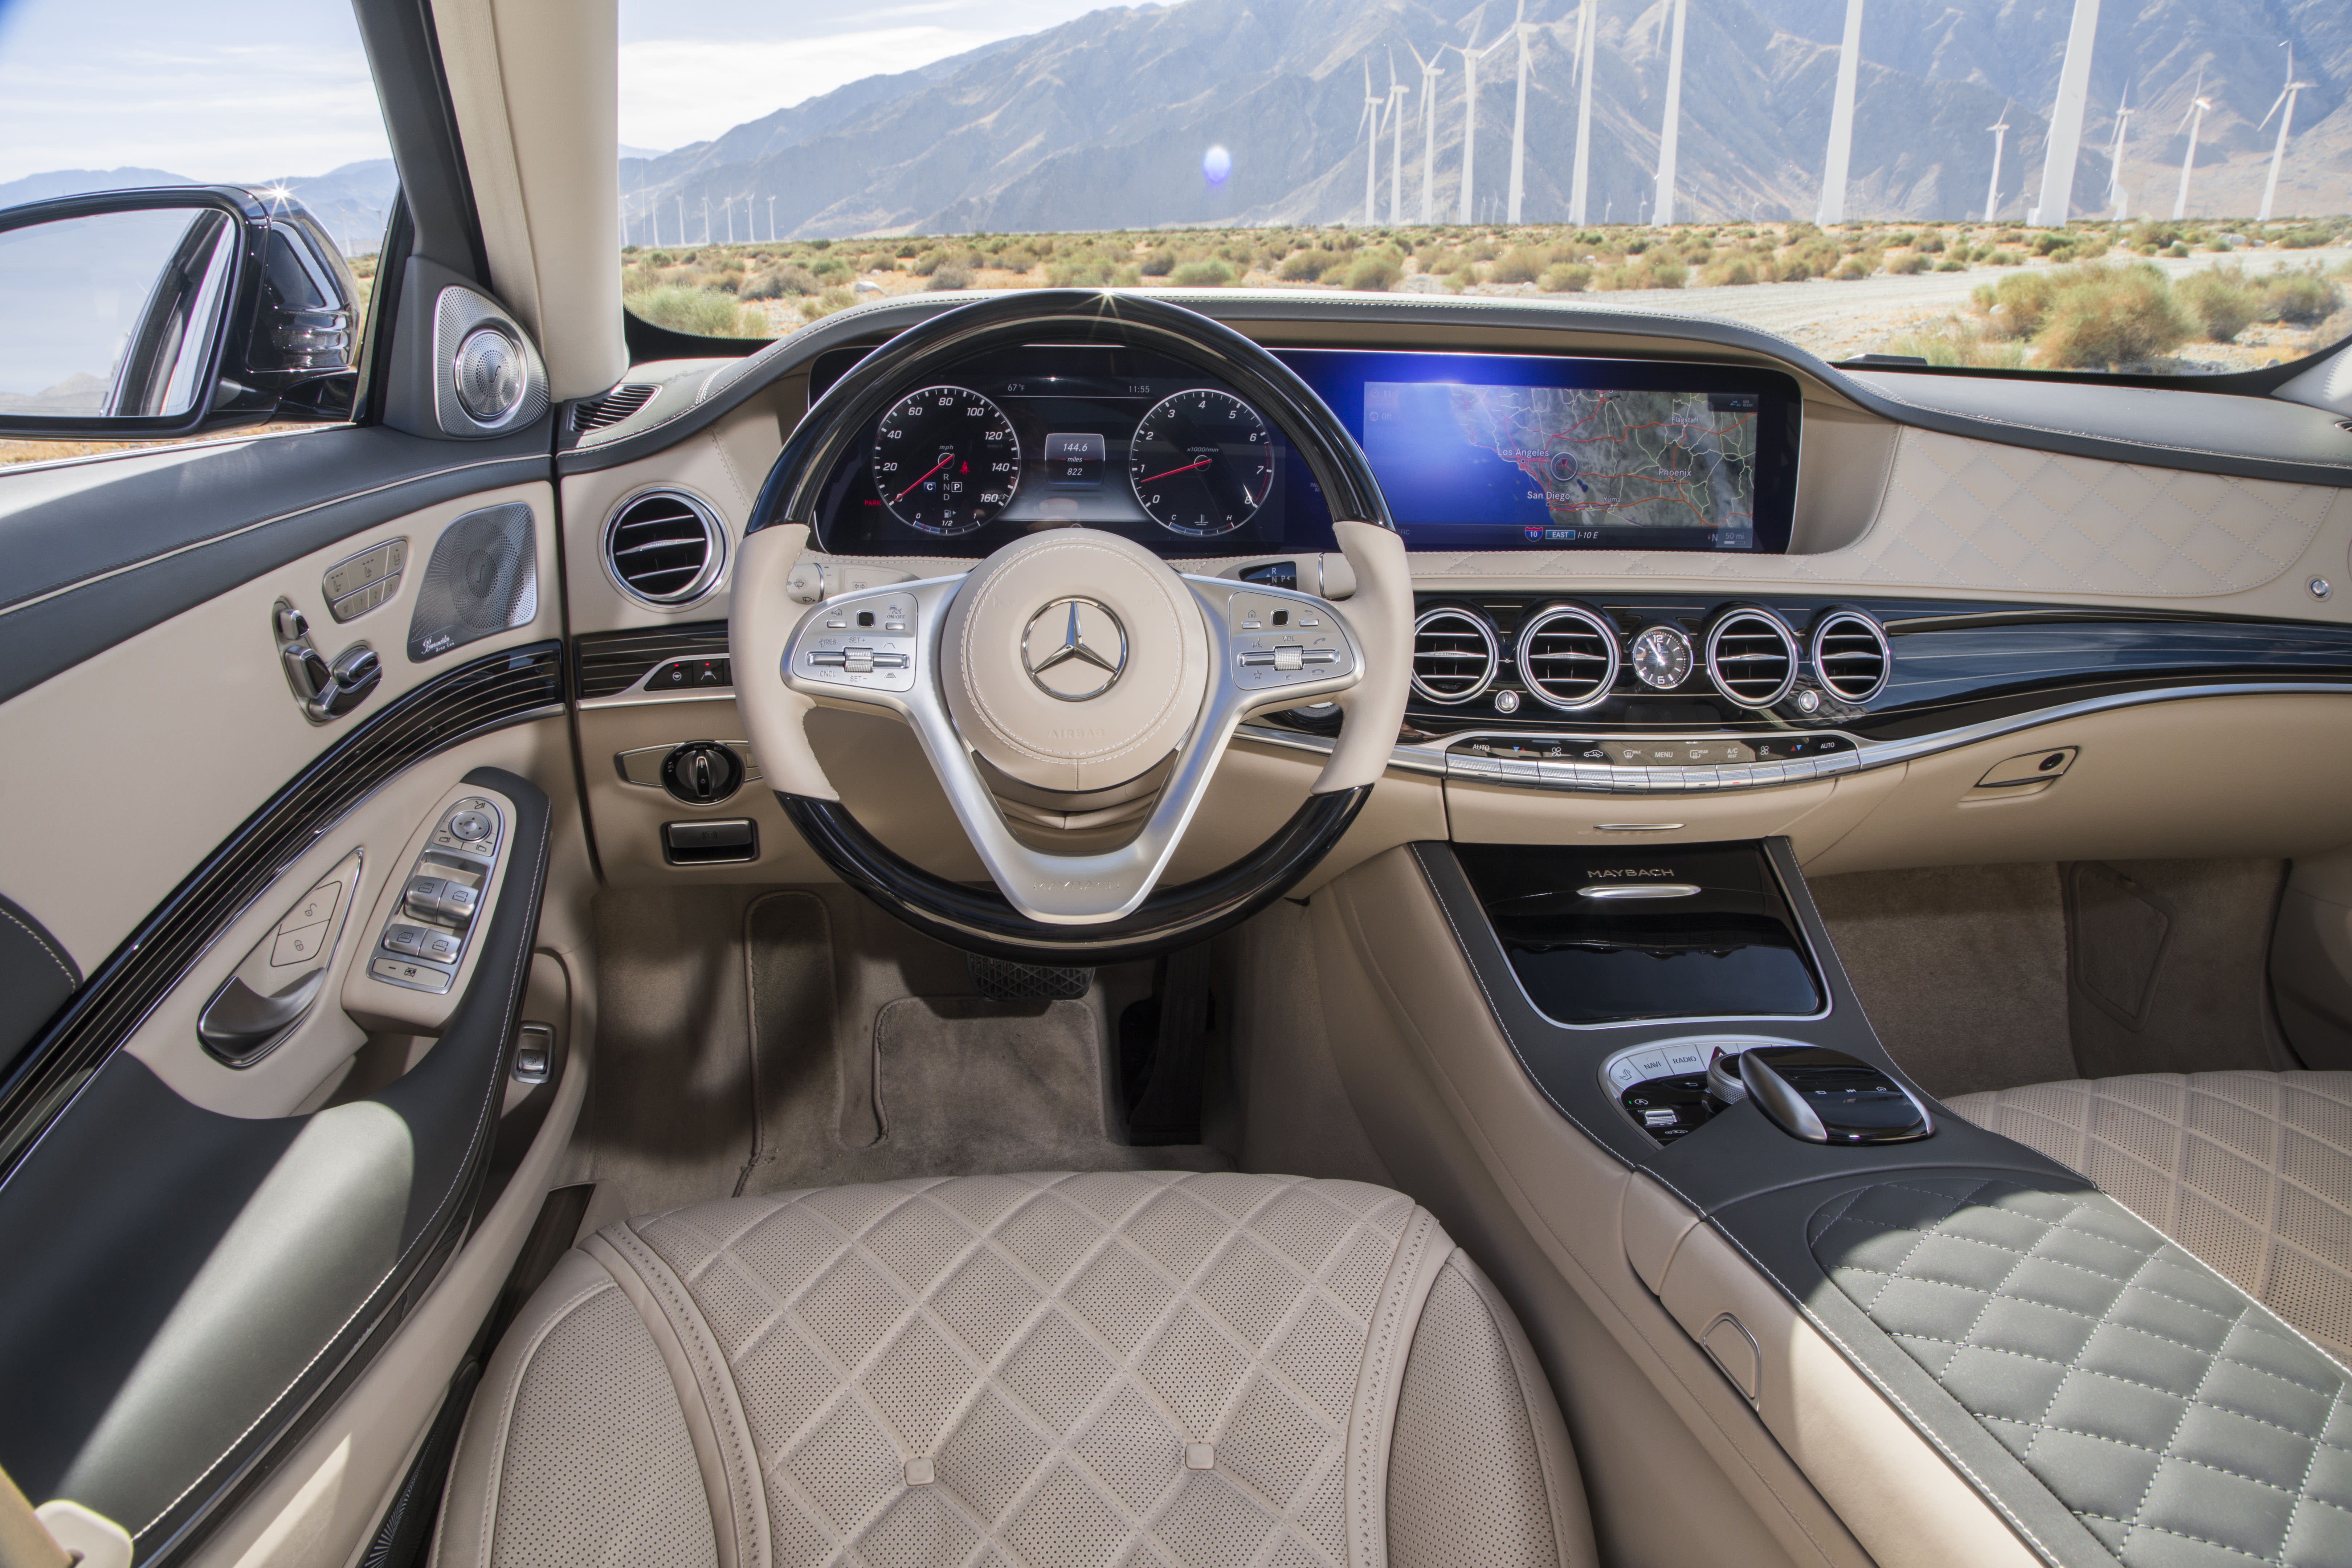 Regular S-class not enough? Try the Mercedes-Maybach S560 [Video]